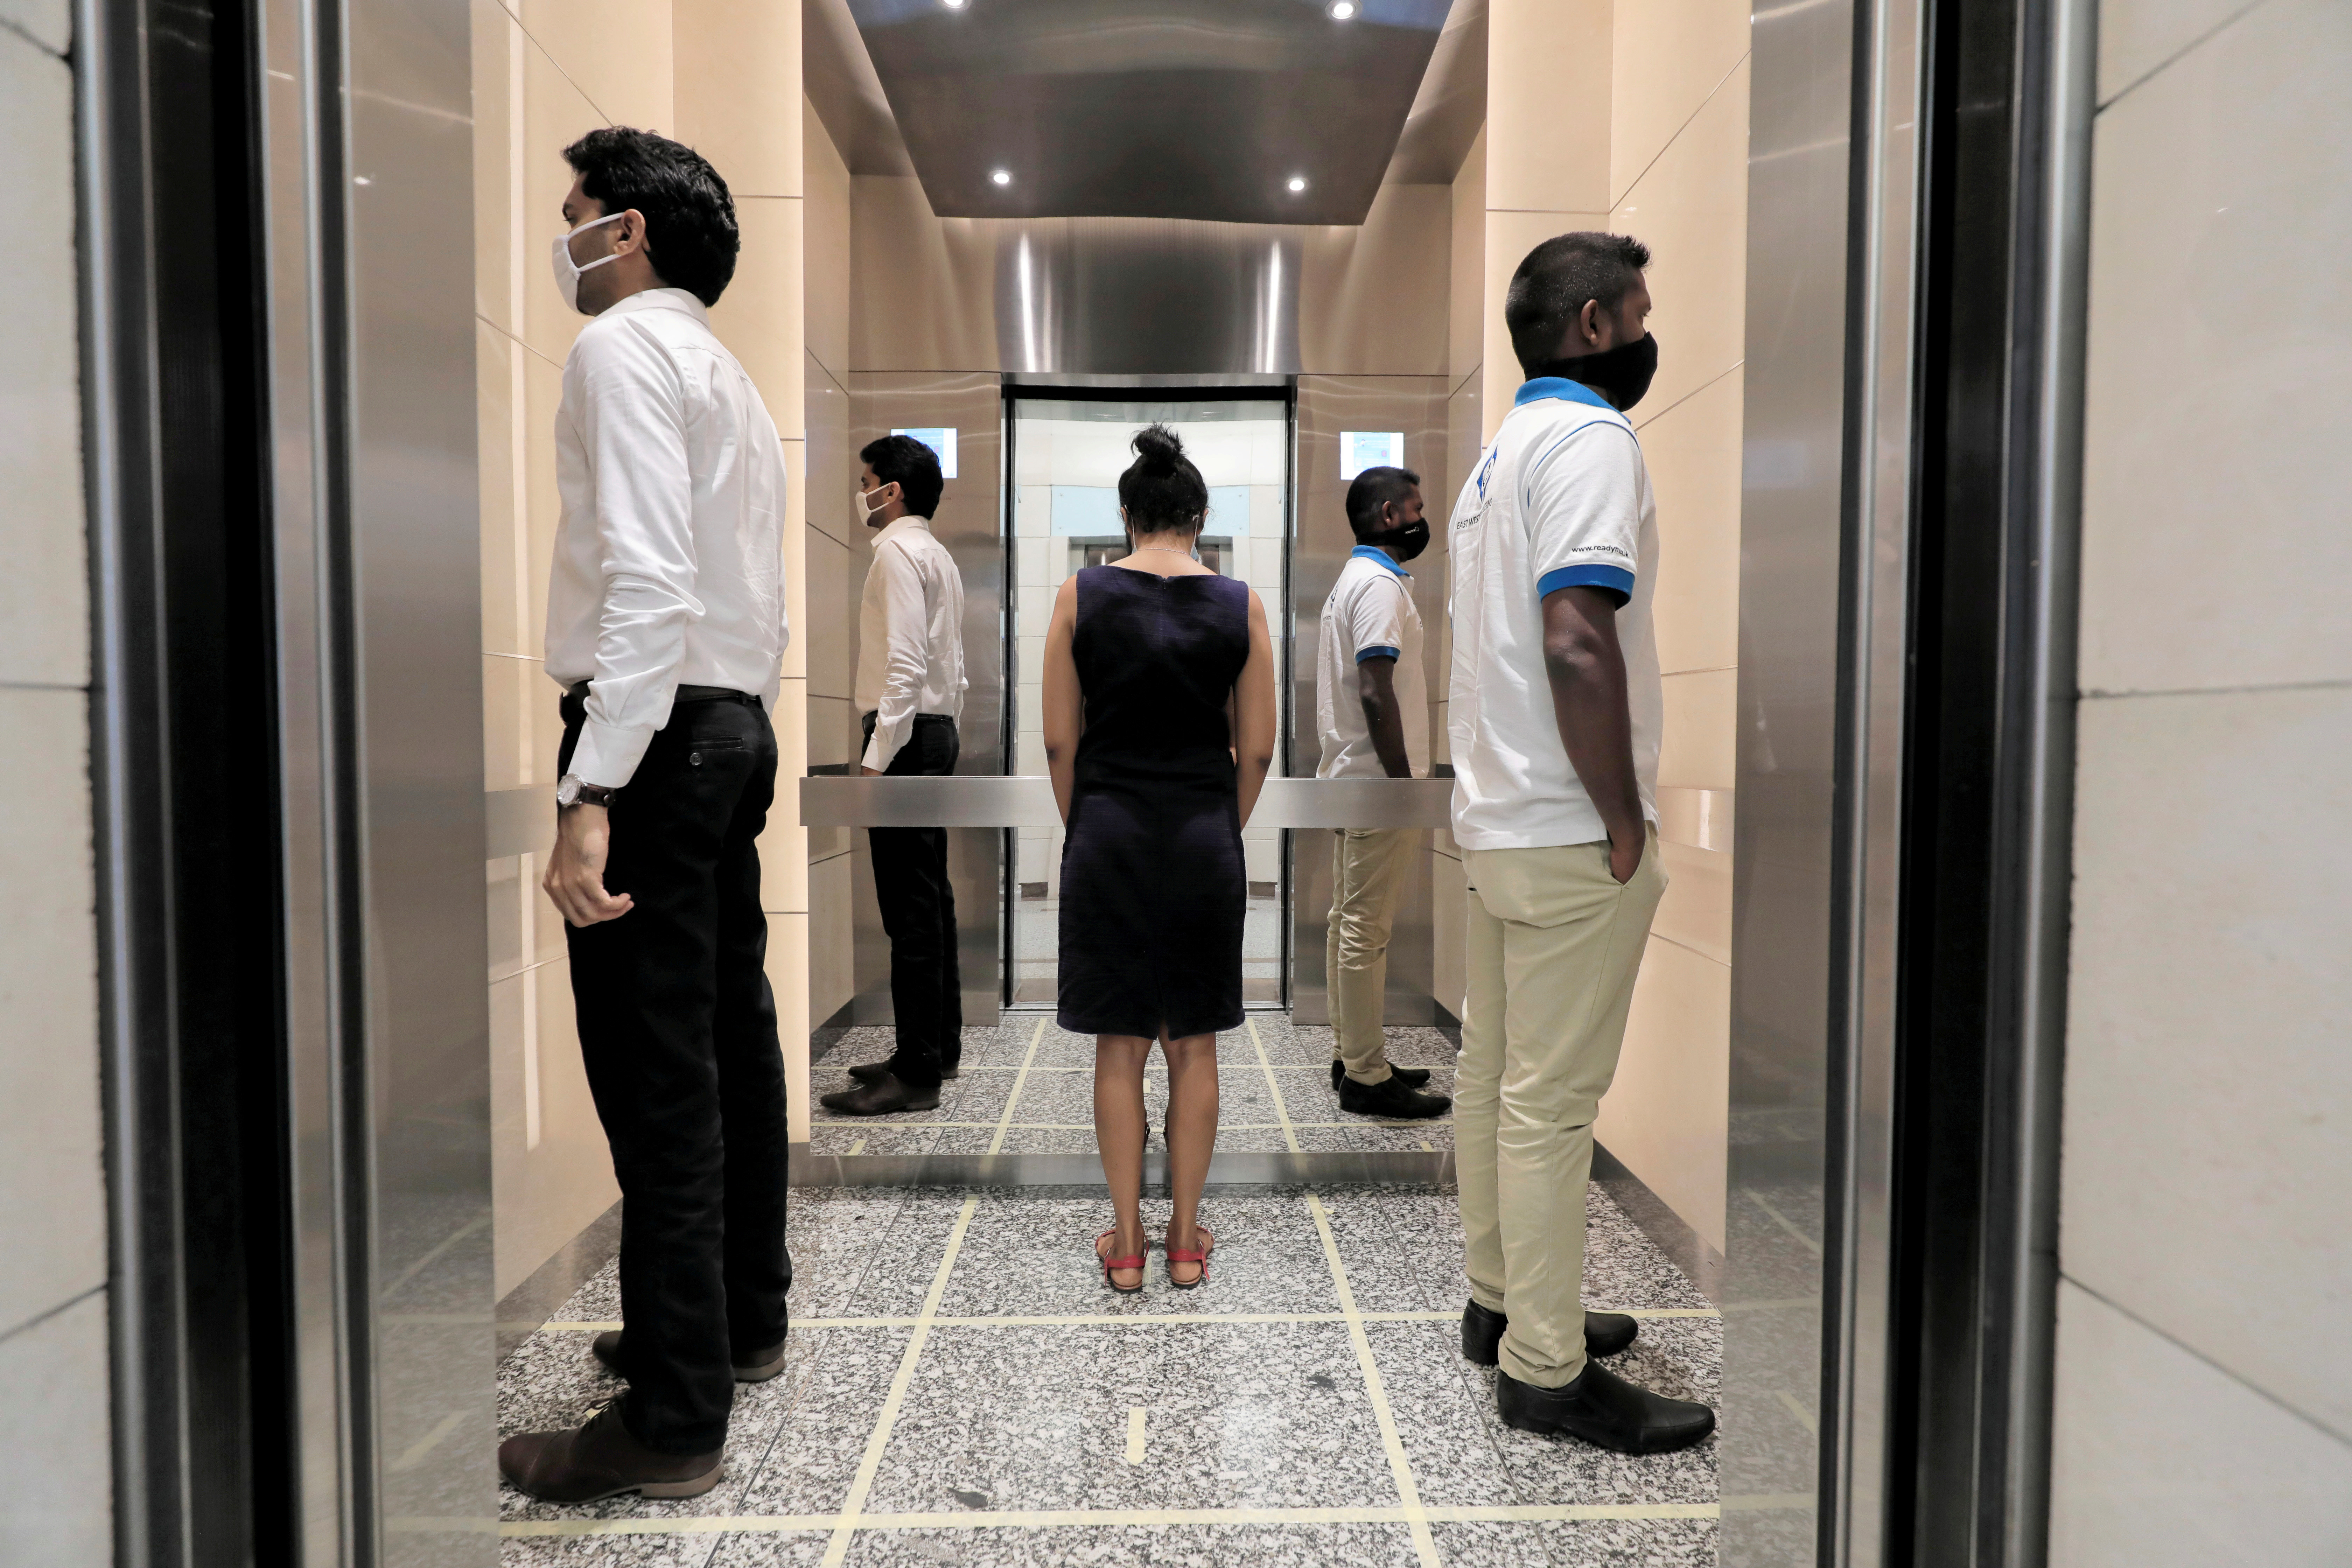 People practice social distancing inside an elevator prior to arriving to their work places at World Trade Center, after the government announced that private and state companies will reopen their offices after almost two months of lockdown amidst concerns about the spread of coronavirus disease (COVID-19) in Colombo, Sri Lanka May 11, 2020. REUTERS/Dinuka Liyanawatte     TPX IMAGES OF THE DAY - RC29MG9B5S3U